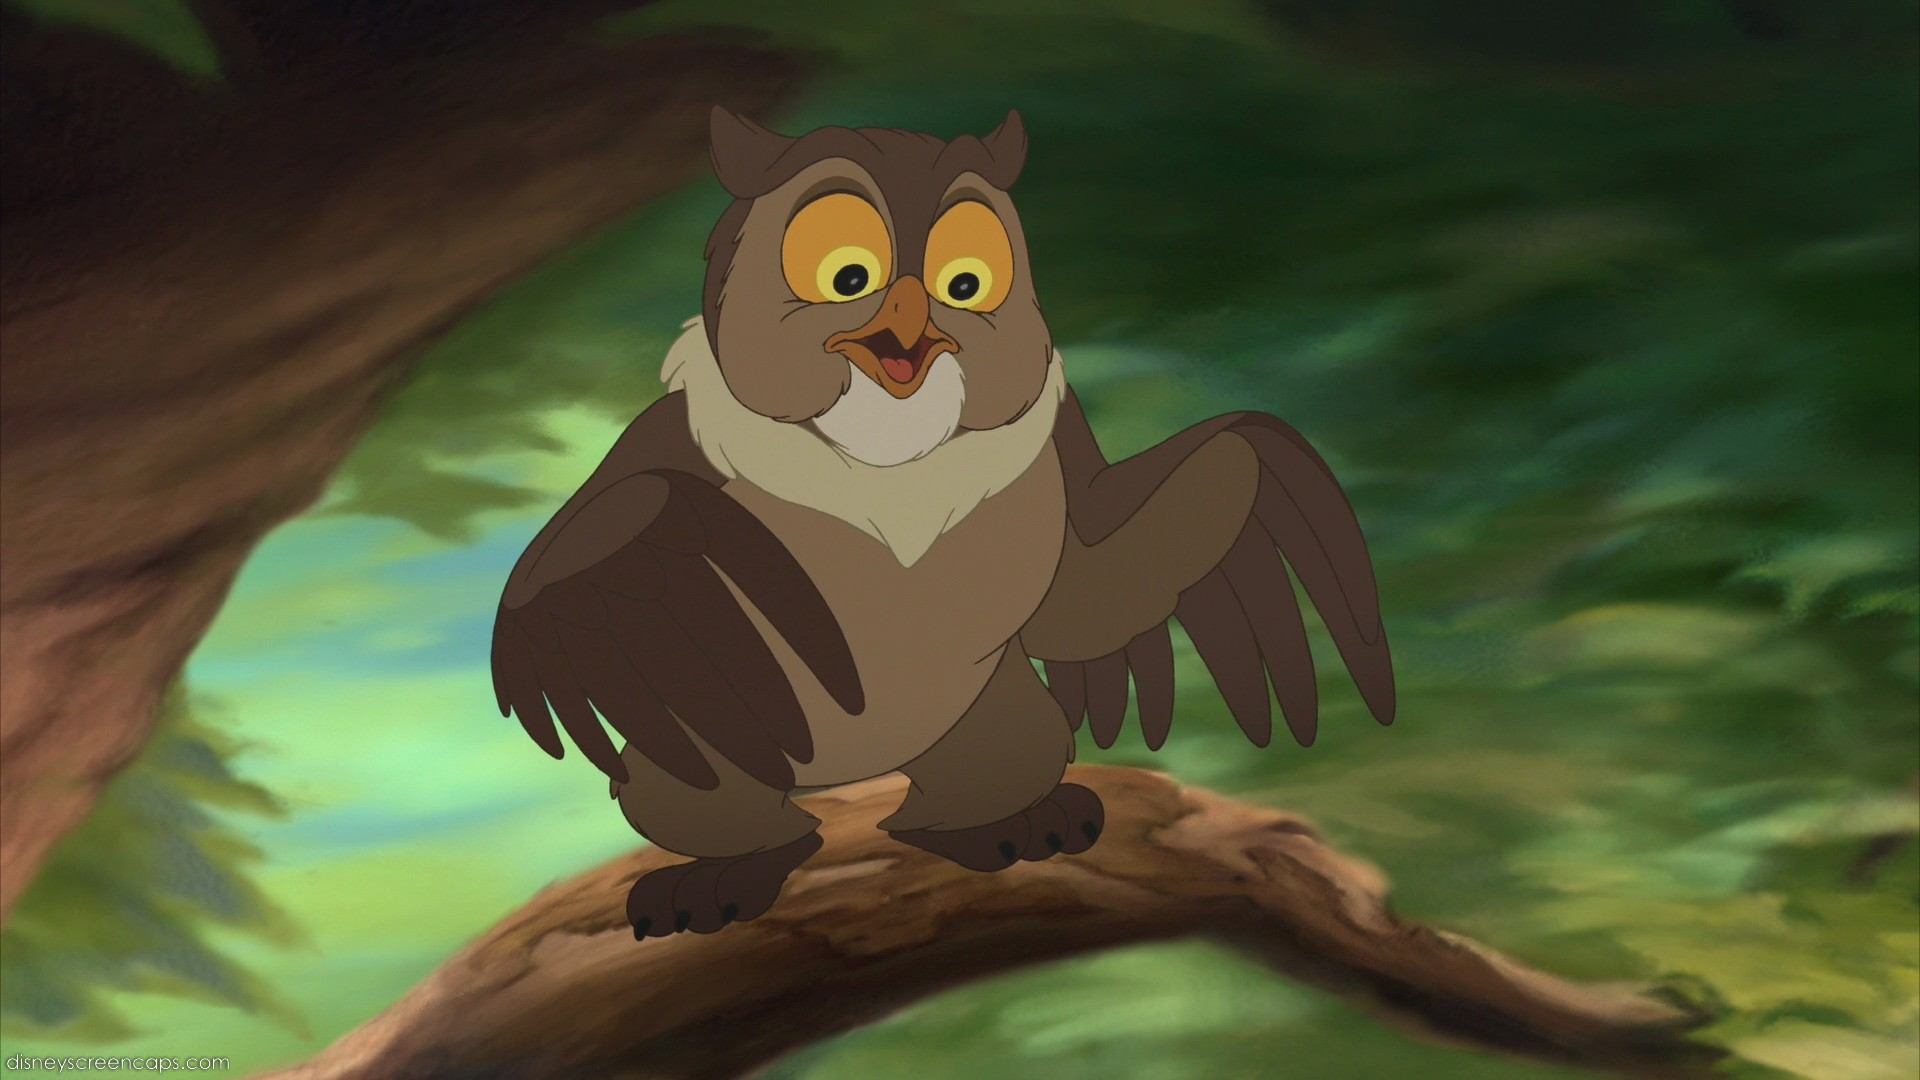 Friend Owl Disney Wiki